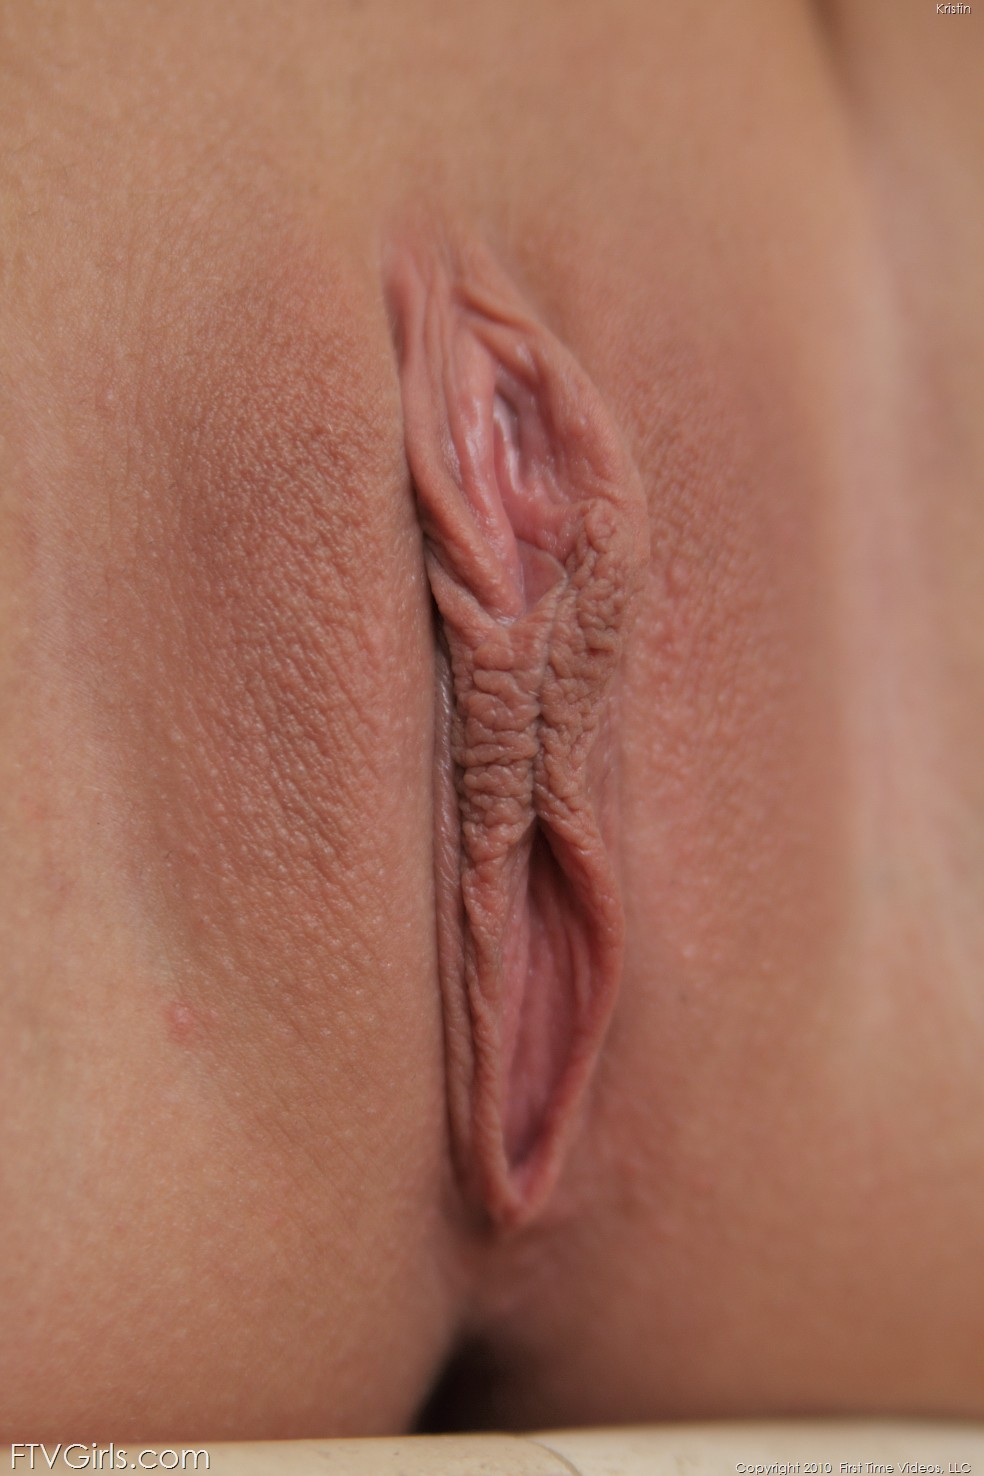 wpid-kristin-plays-with-her-pussy-using-a-dildo3.jpg